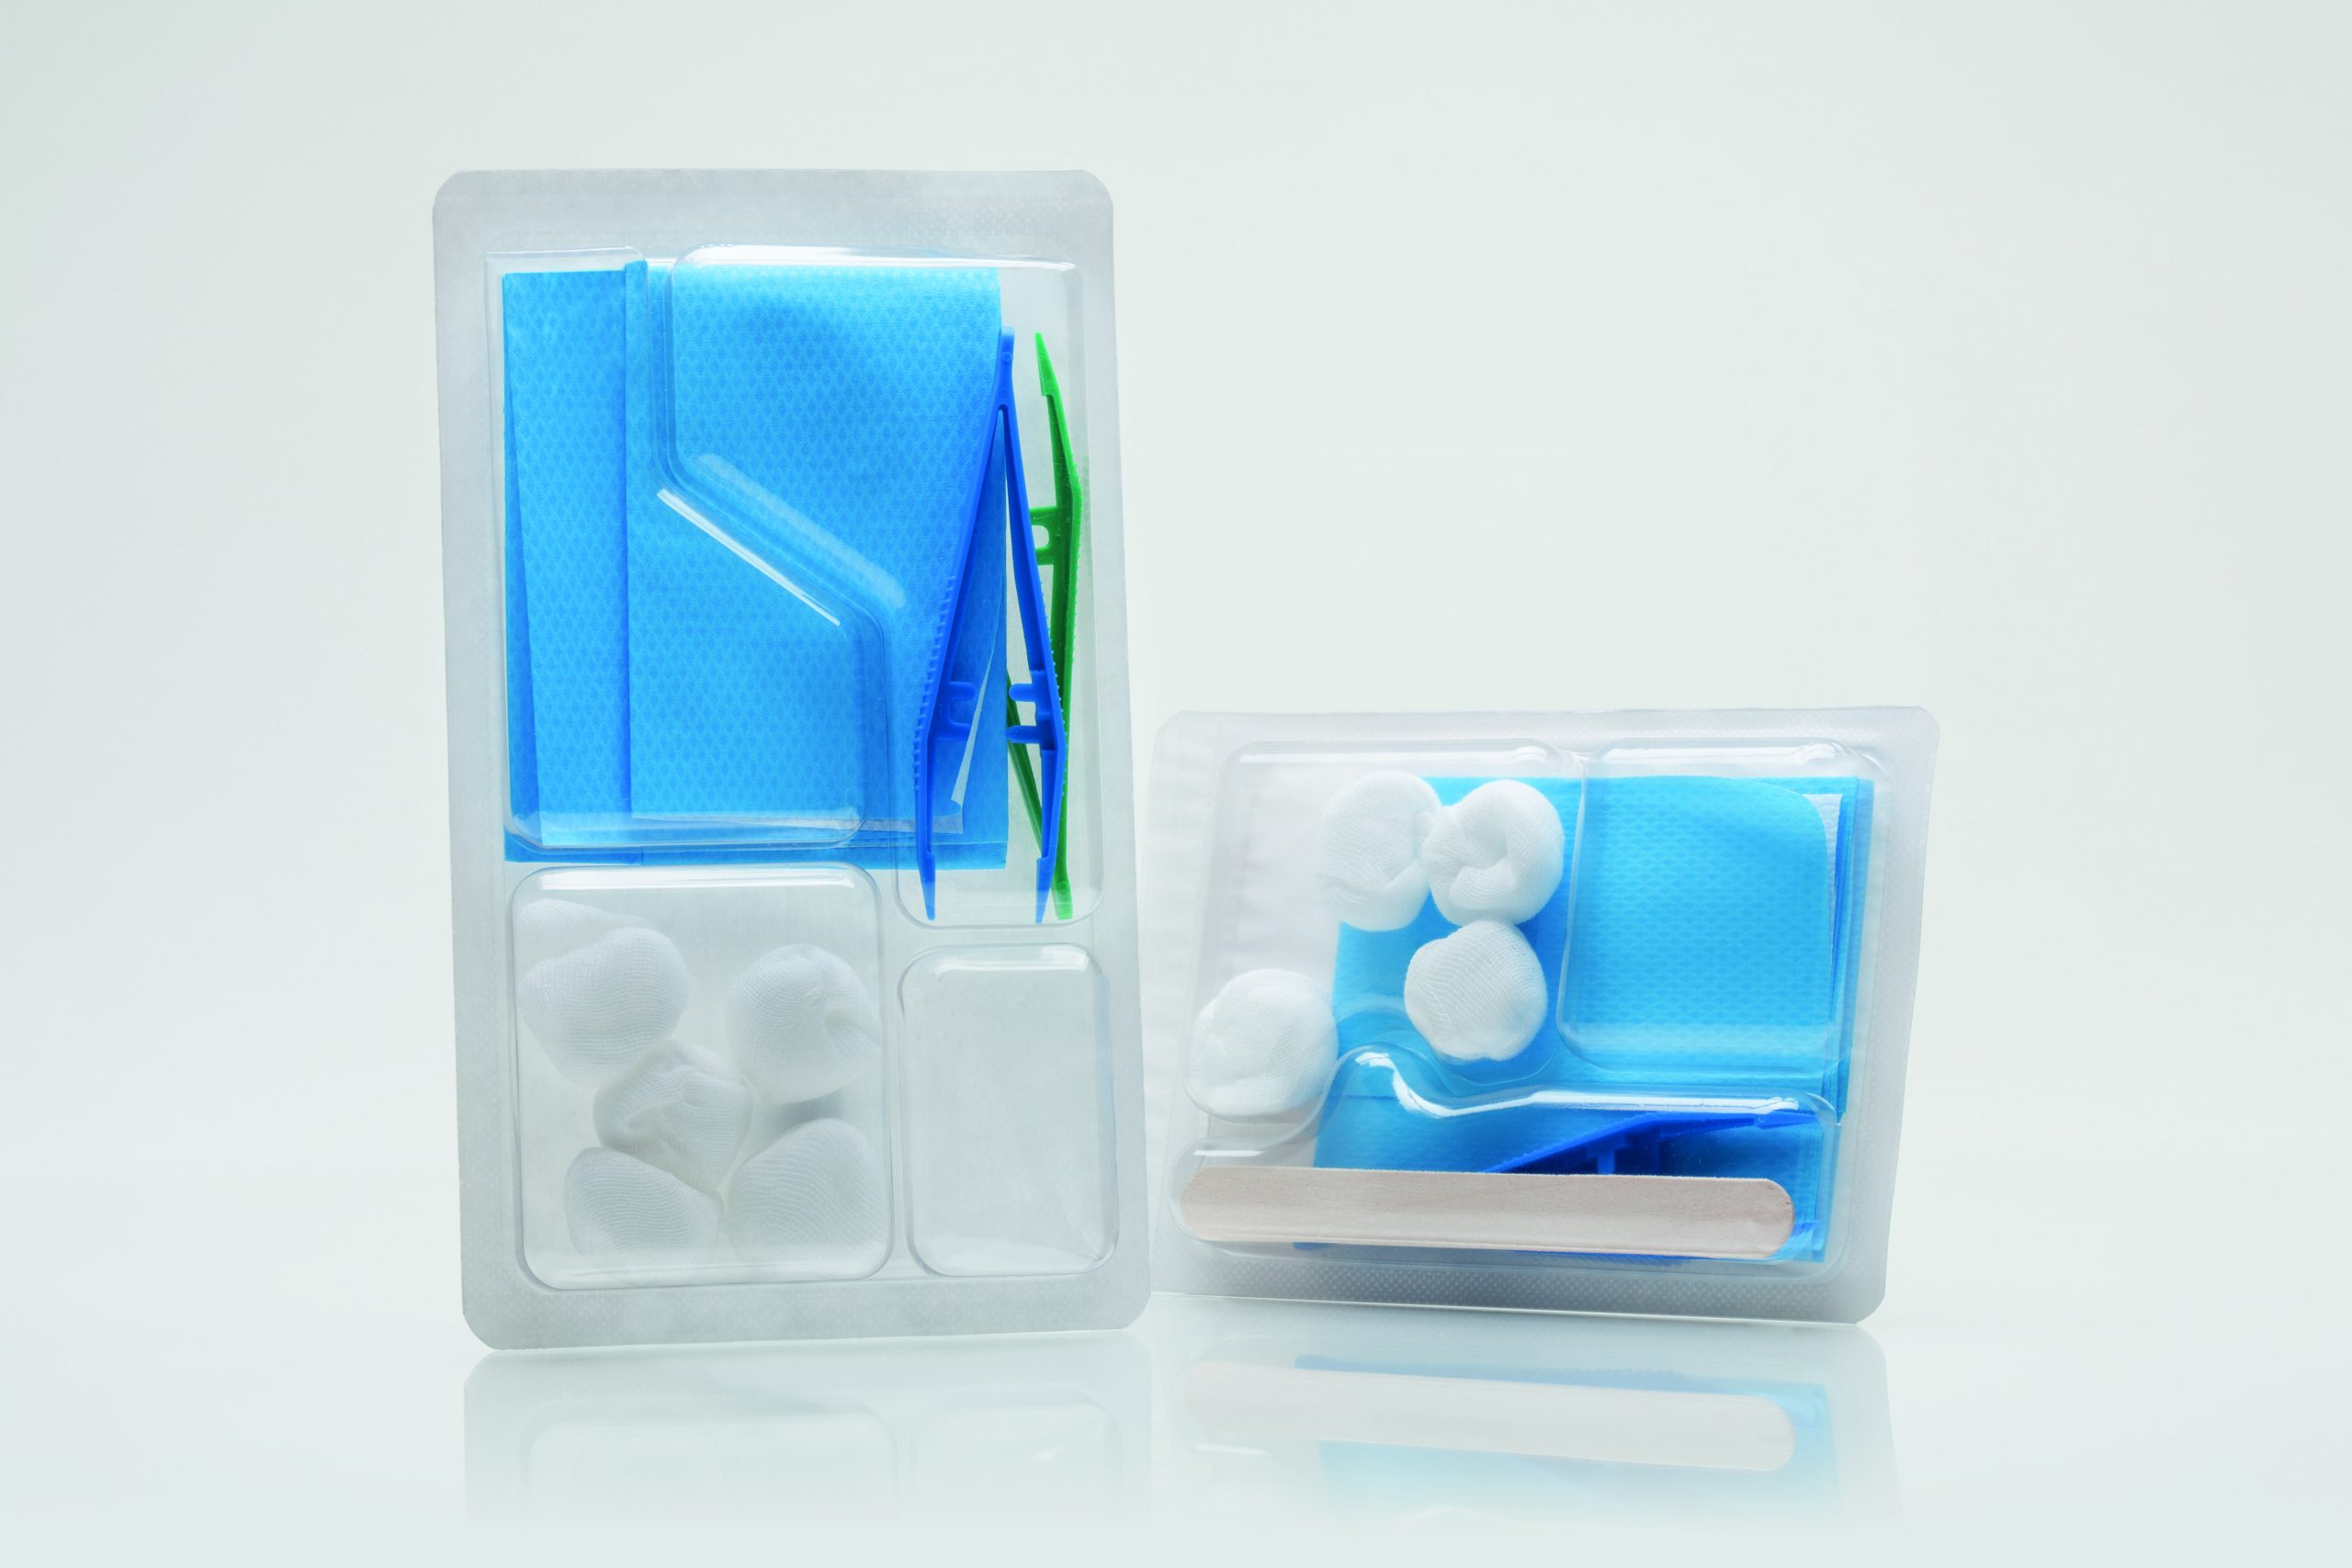 Multivac Pack life science and healthcare products securely, flexibly and efficiently